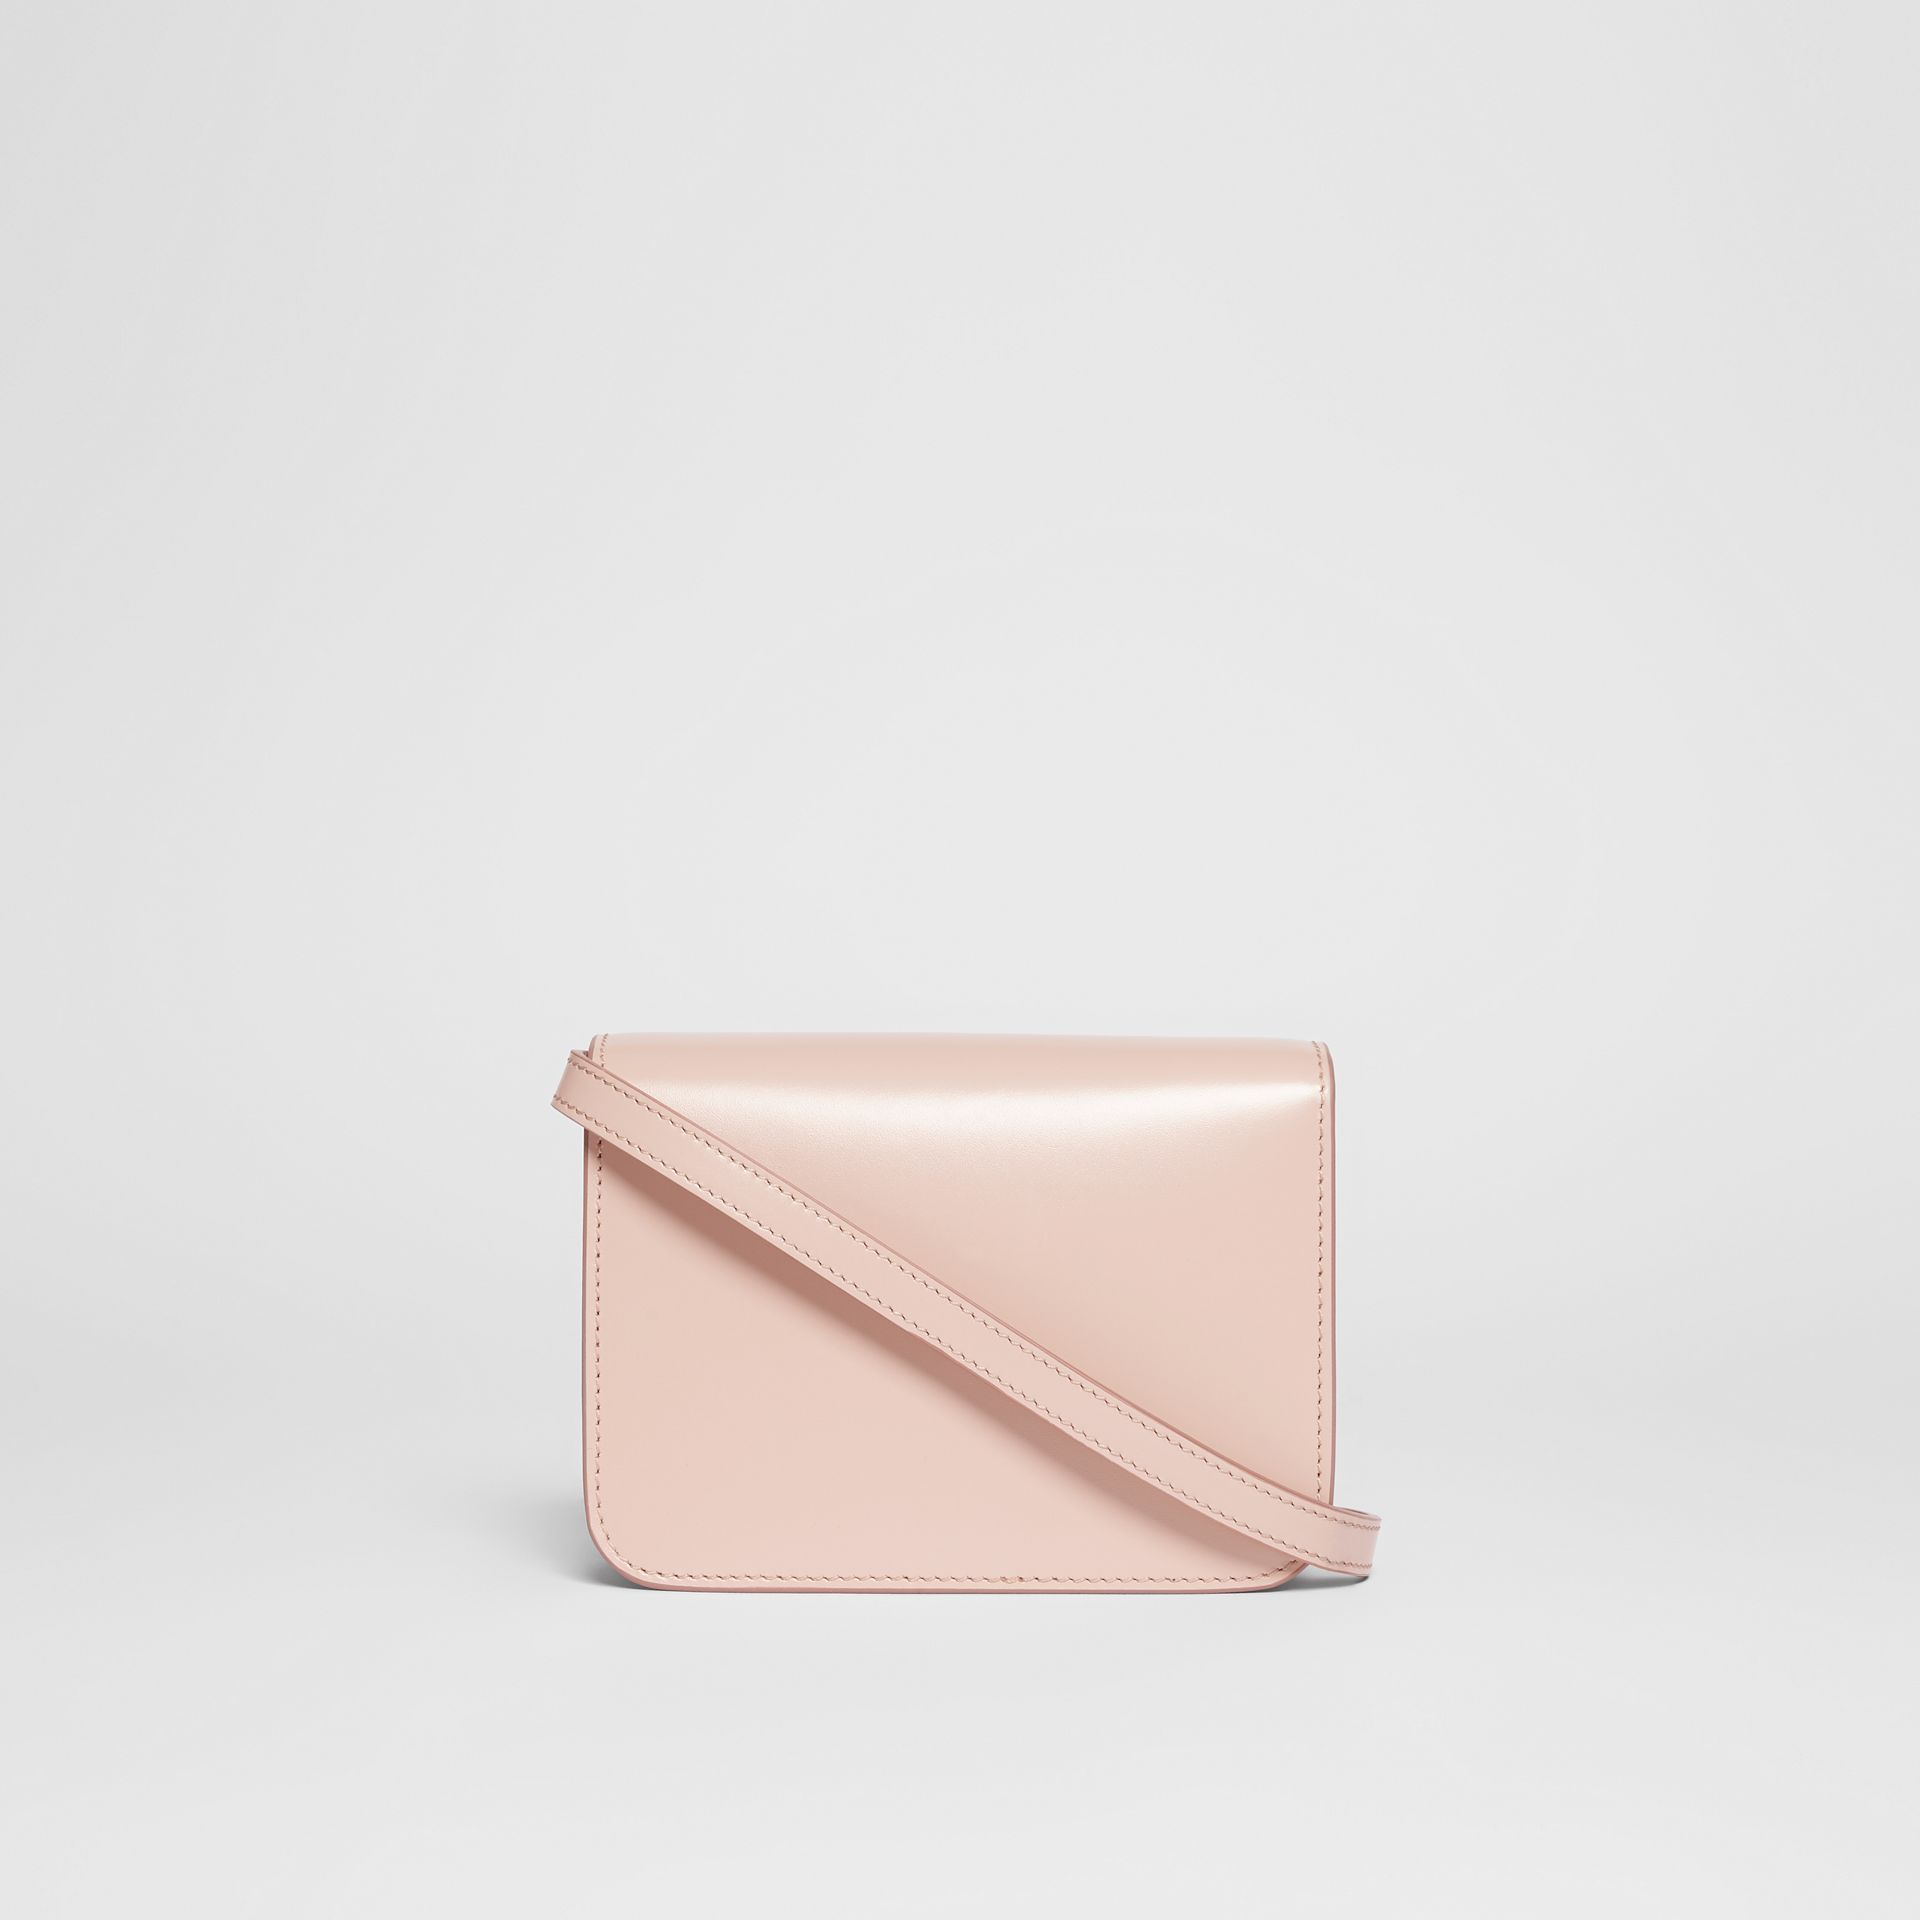 Mini Leather TB Bag in Rose Beige - Women | Burberry Canada - gallery image 7